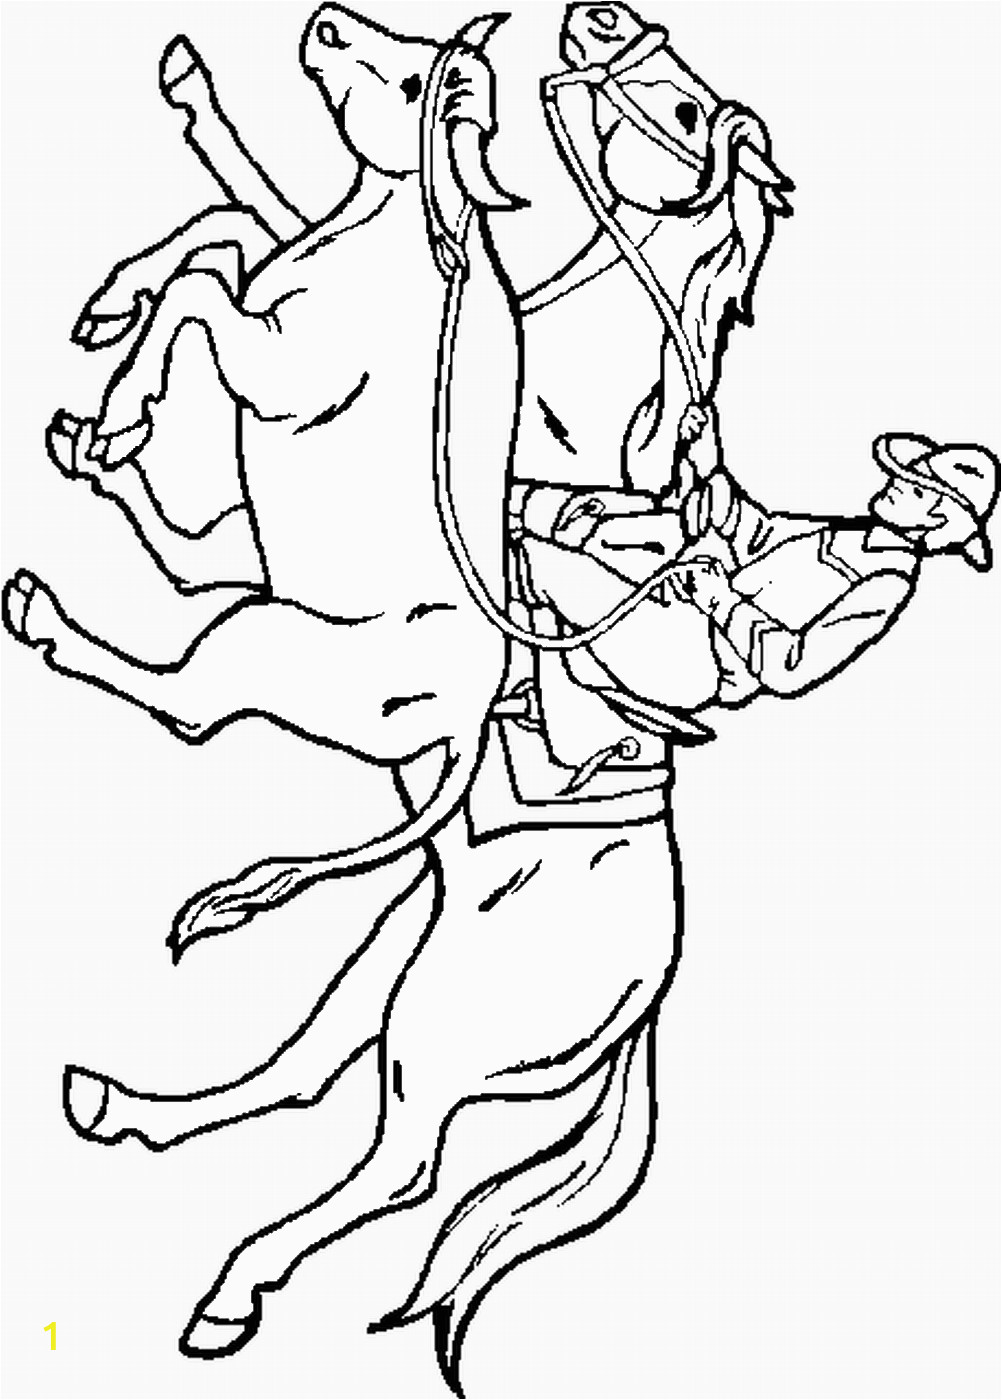 Cowboy Coloring Pages to Print Free Cowboy Coloring Pages